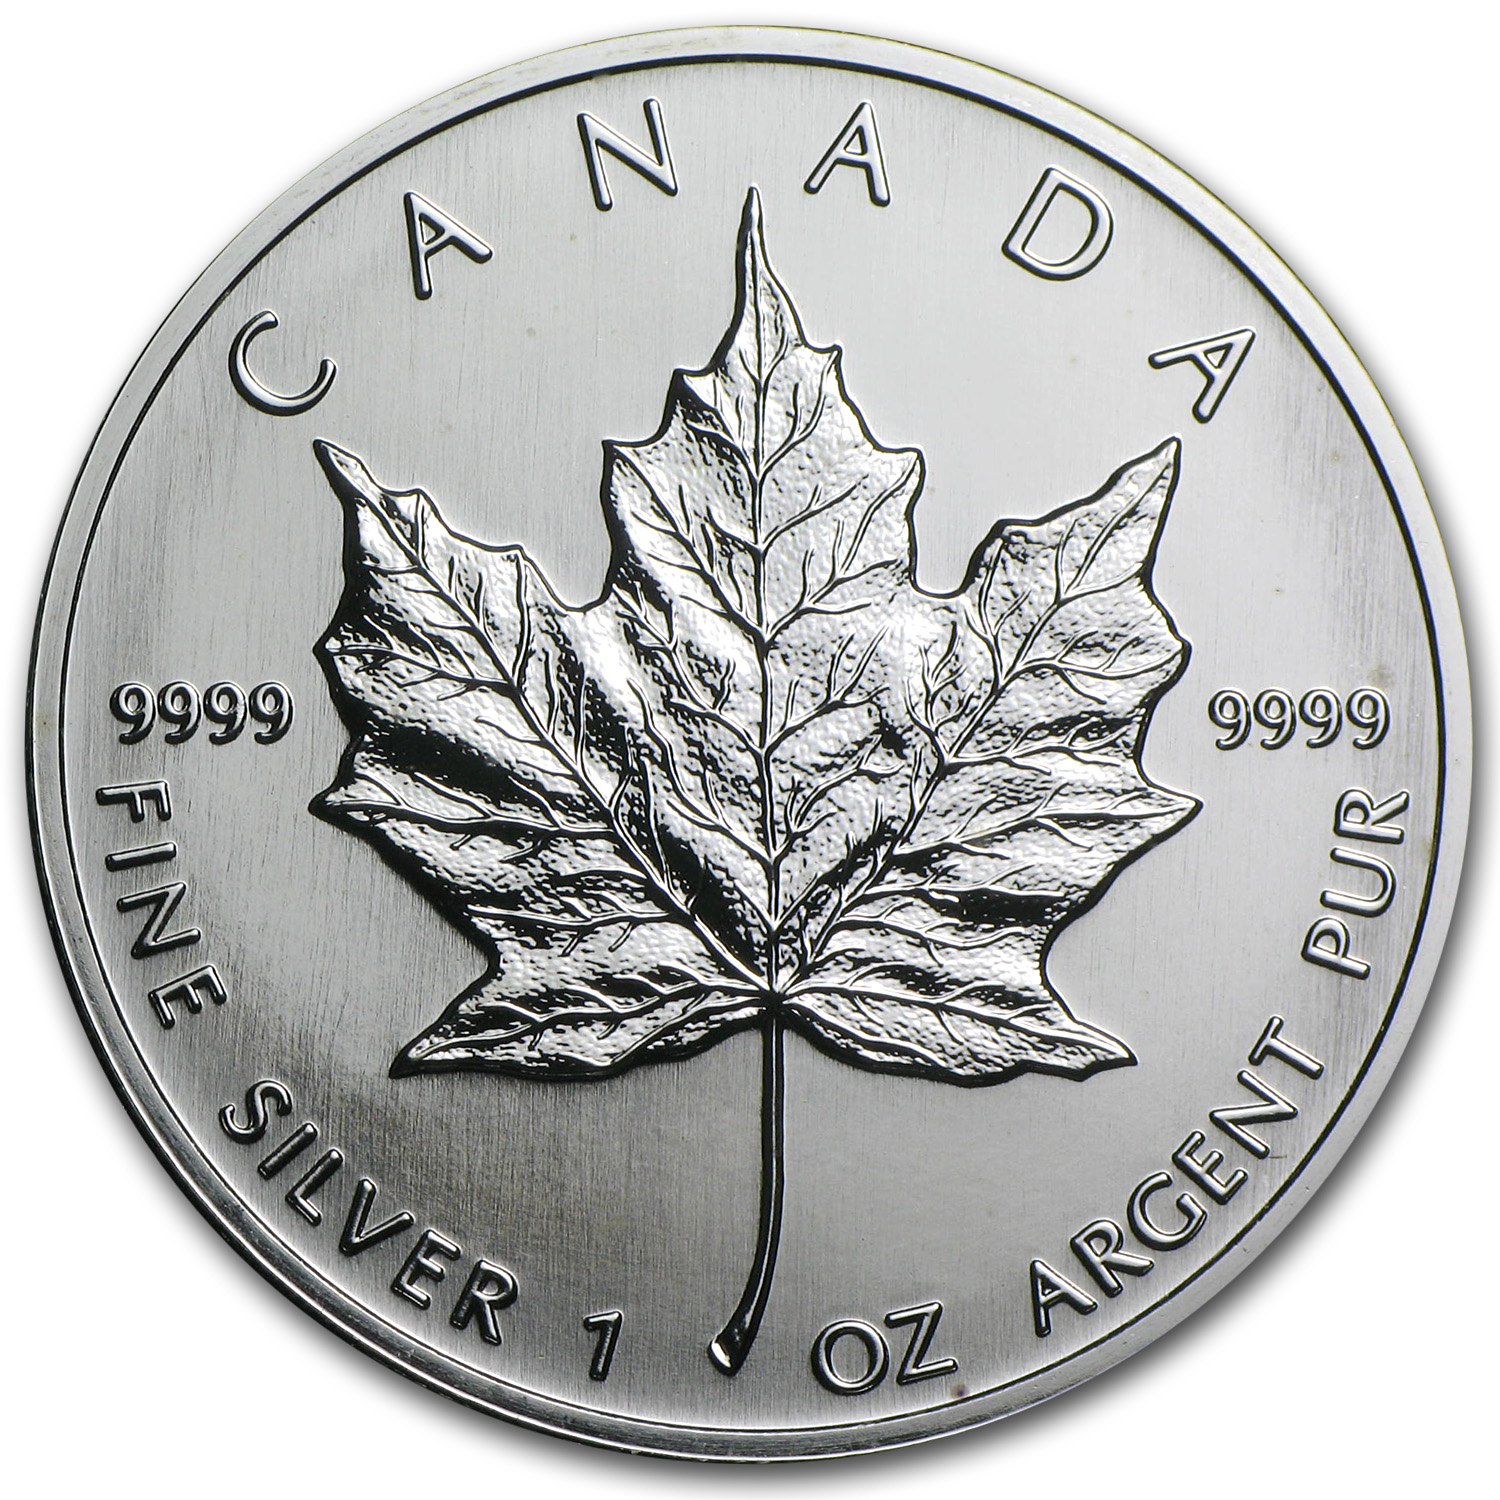 1991 1 oz Silver Canadian Maple Leaf BU